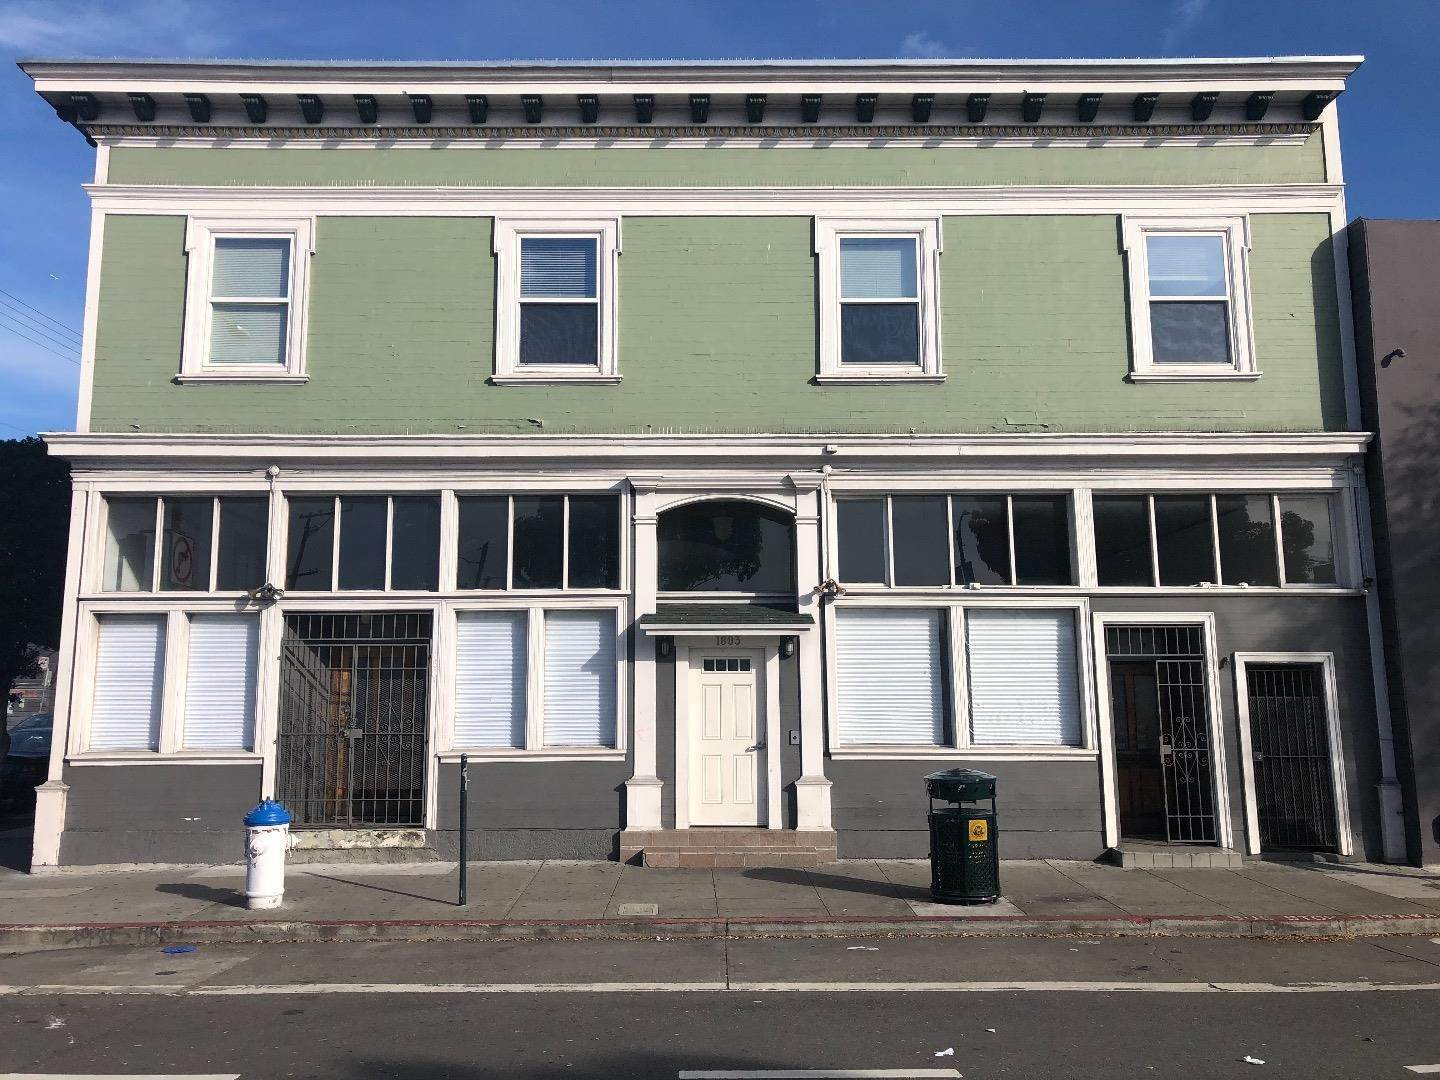 Multi-Family Homes for Sale at 1801 Folsom Street San Francisco, California 94103 United States